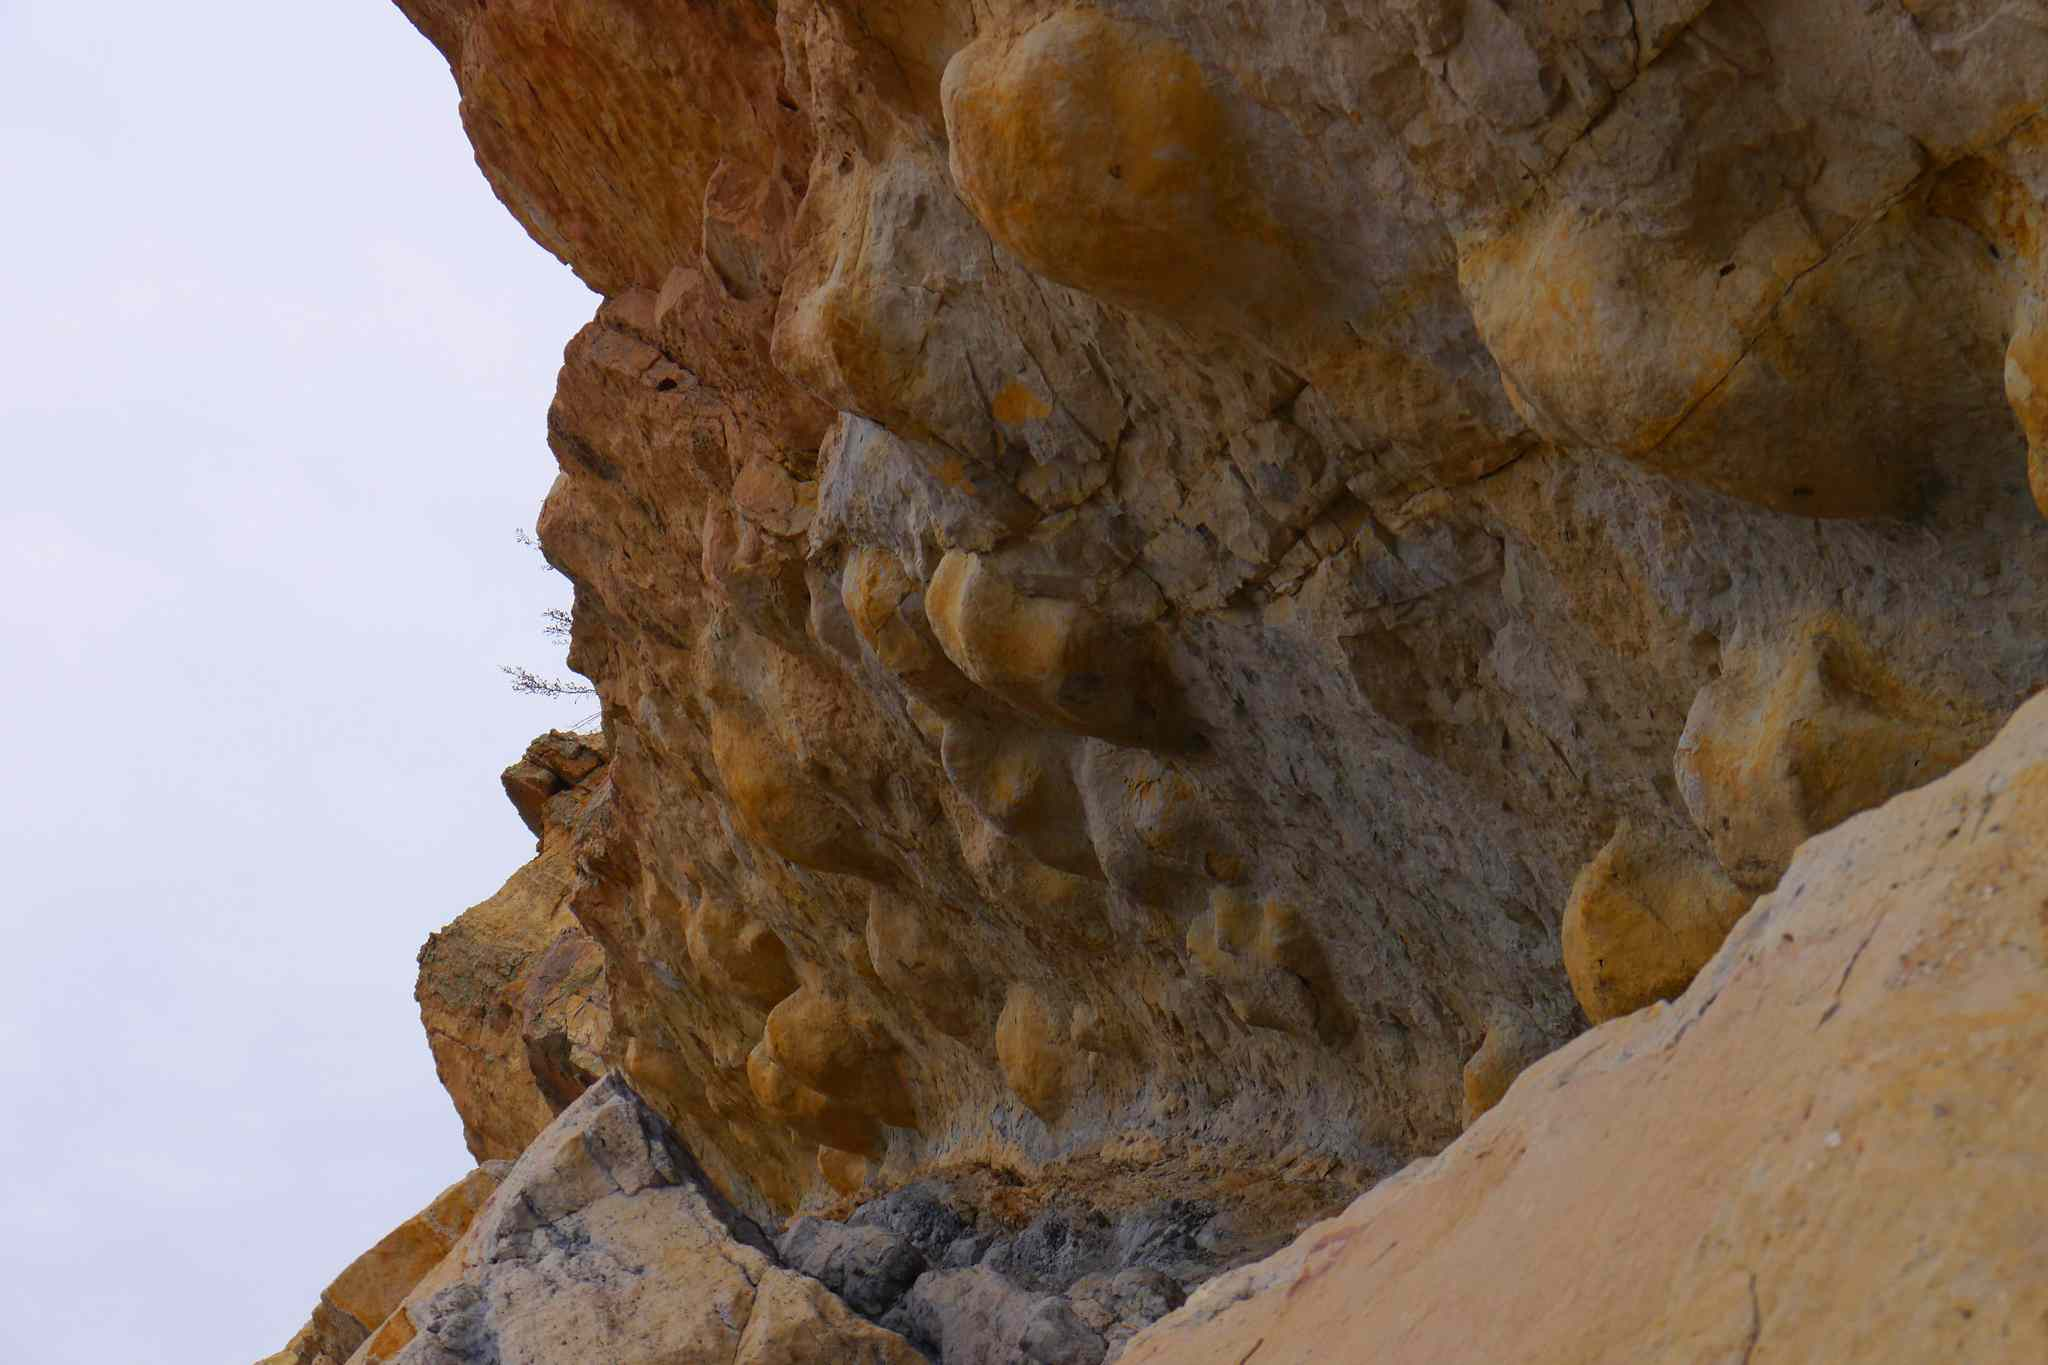 Fossilized dinosaur tracks extruding from a rocky cliff